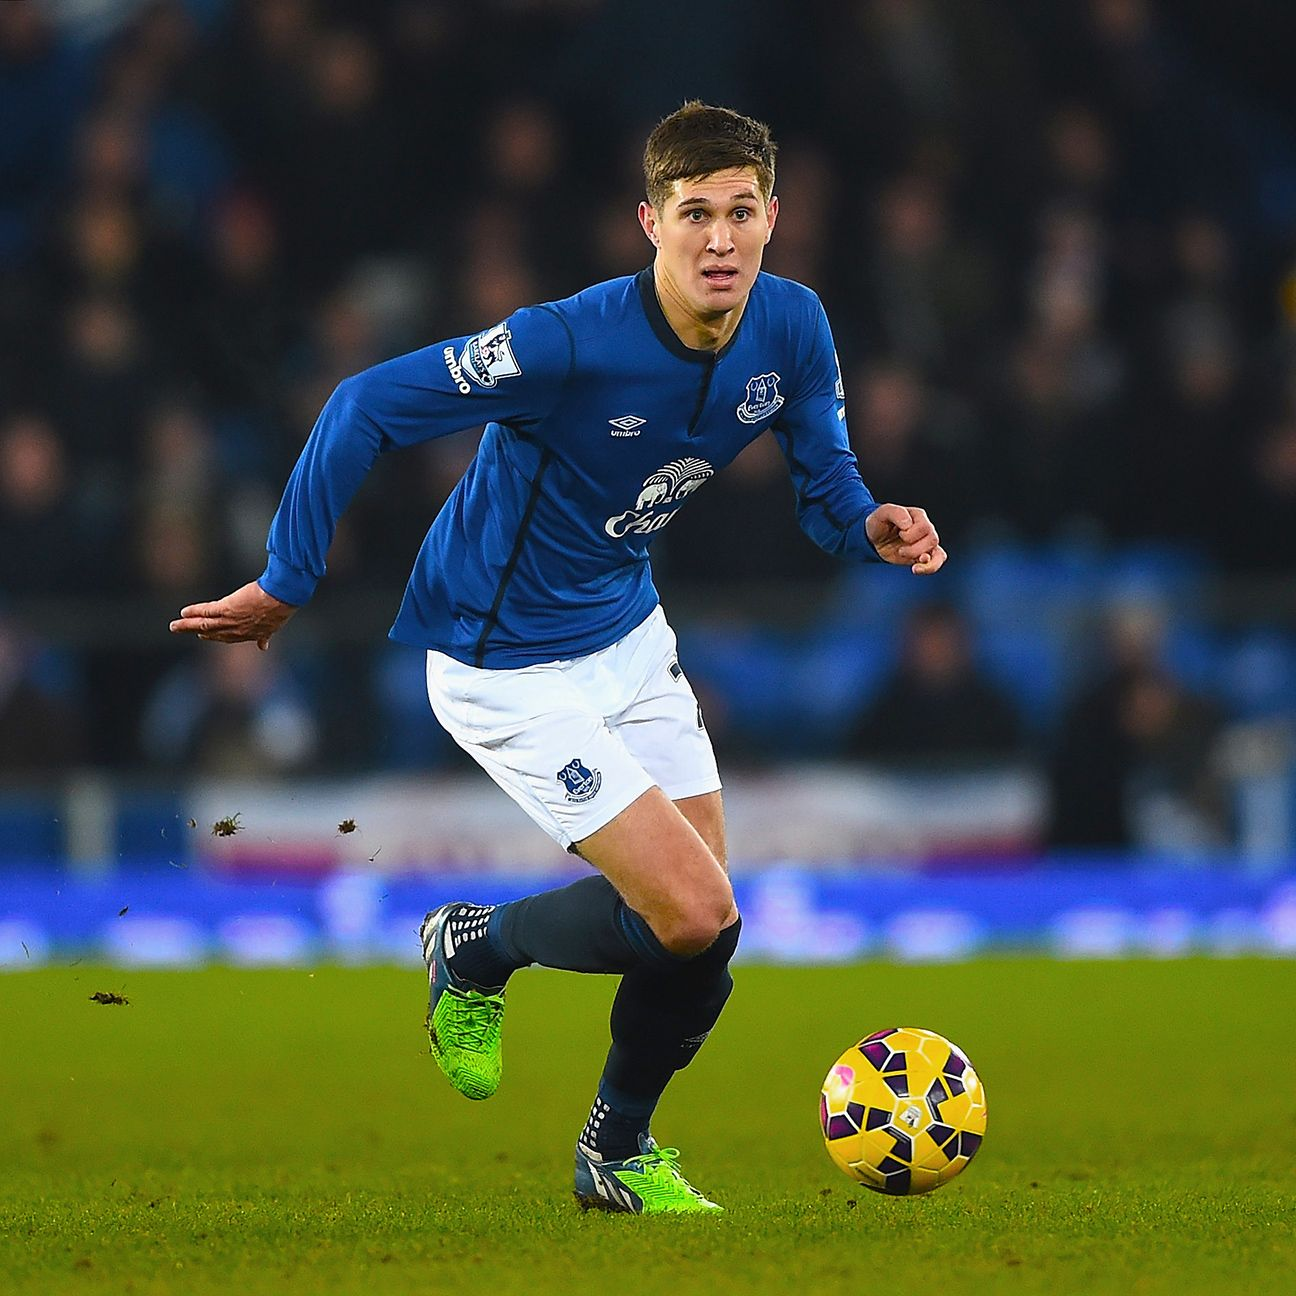 John Stones started 23 Premier League matches for Everton in 2014-15.